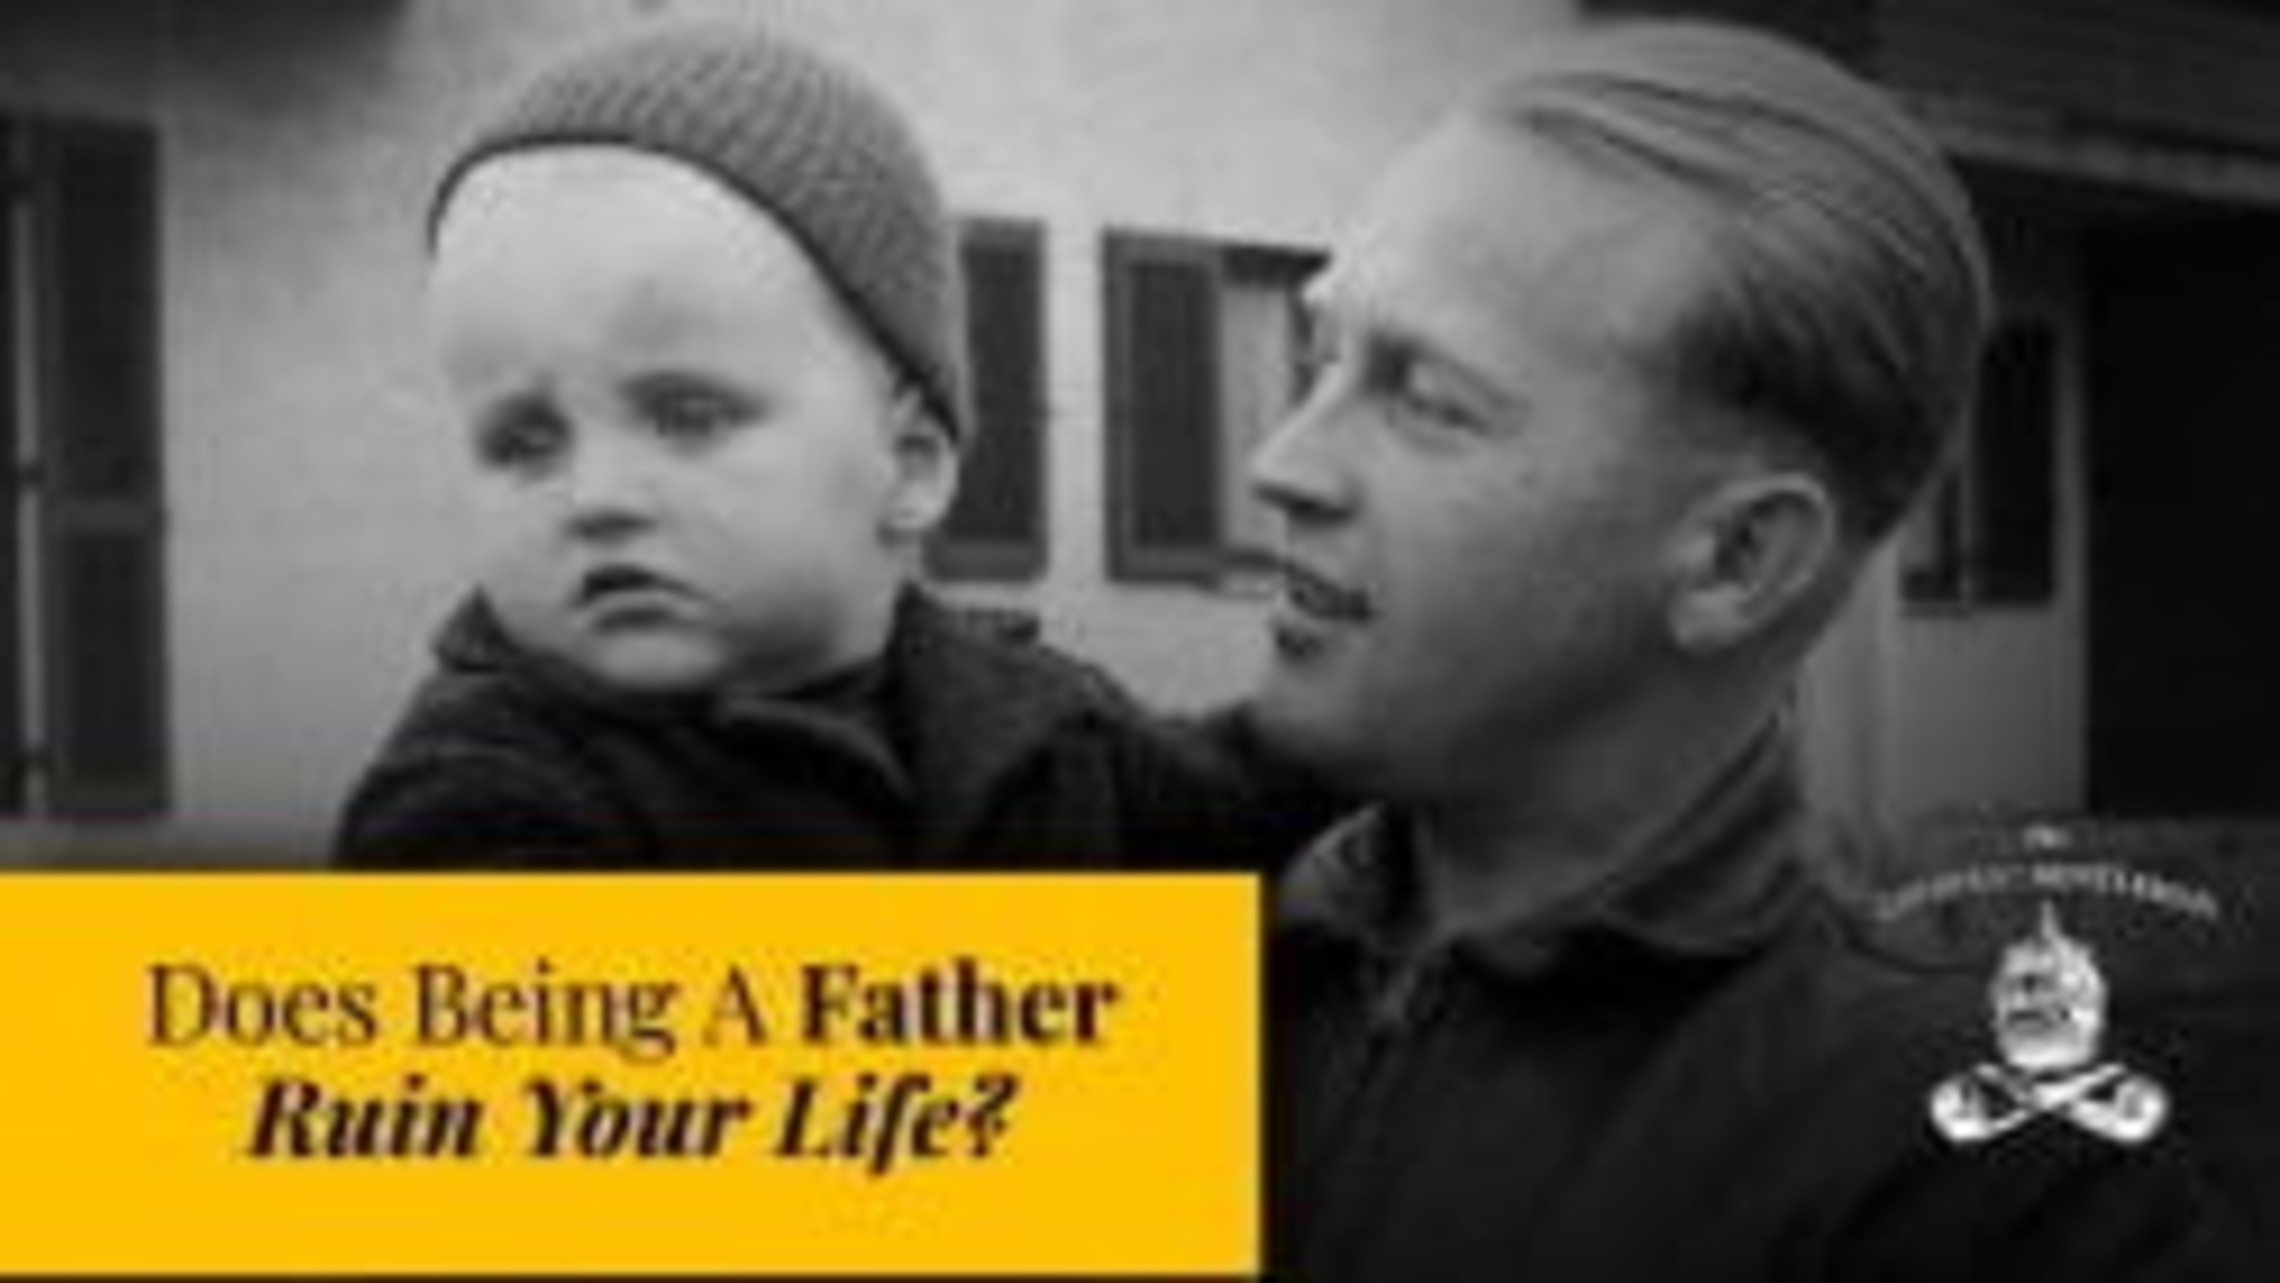 Does Being A Father Ruin Your Life?